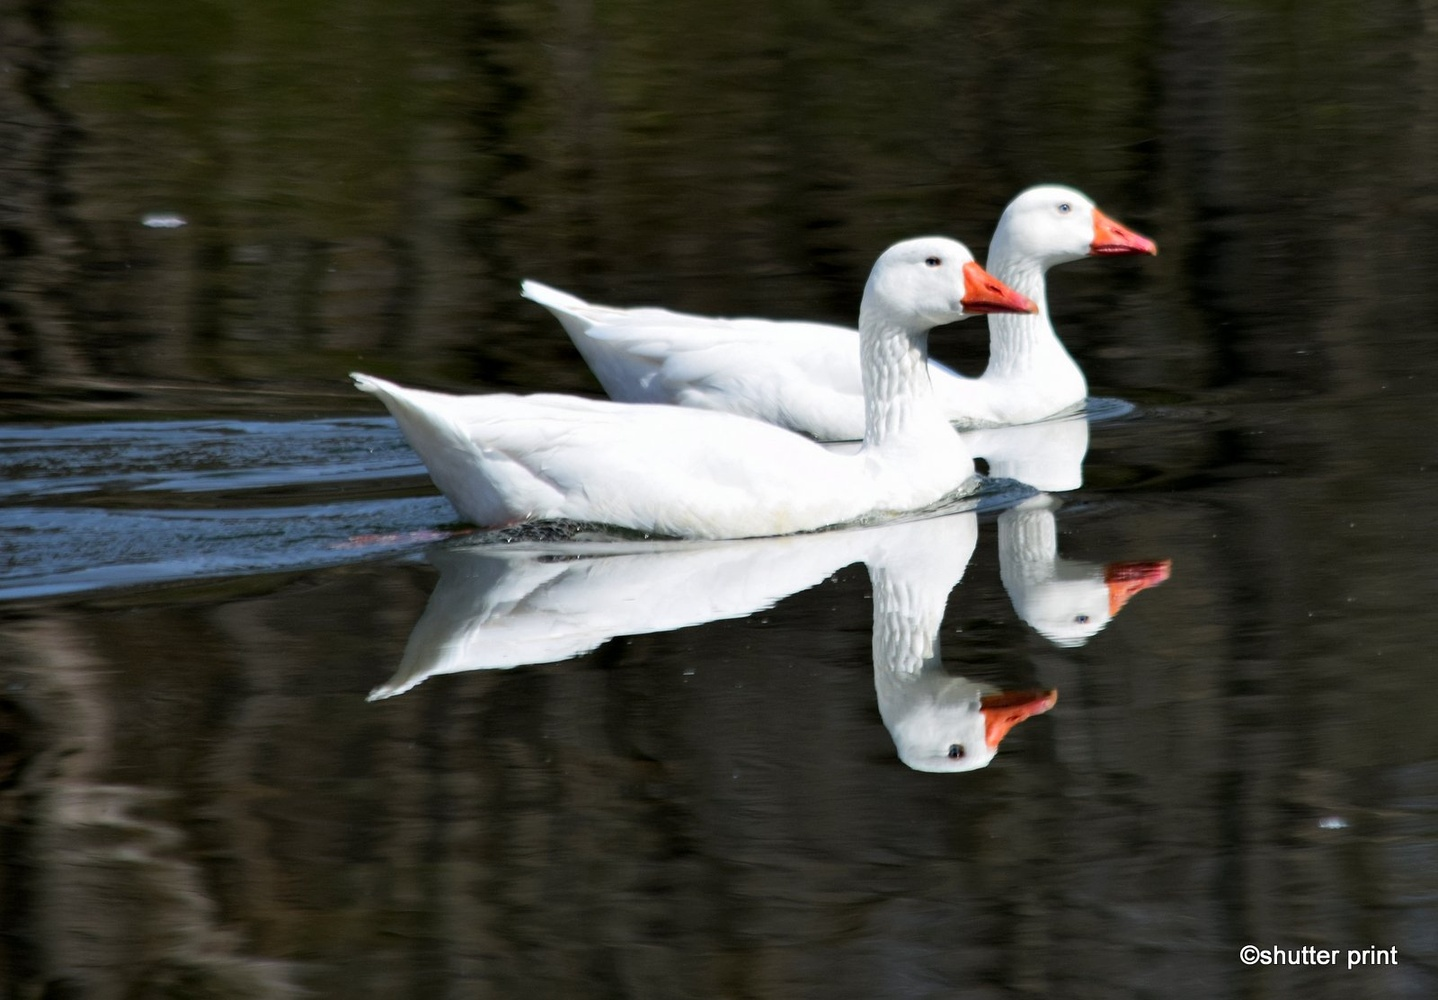 Double Vision by Pam Stewart